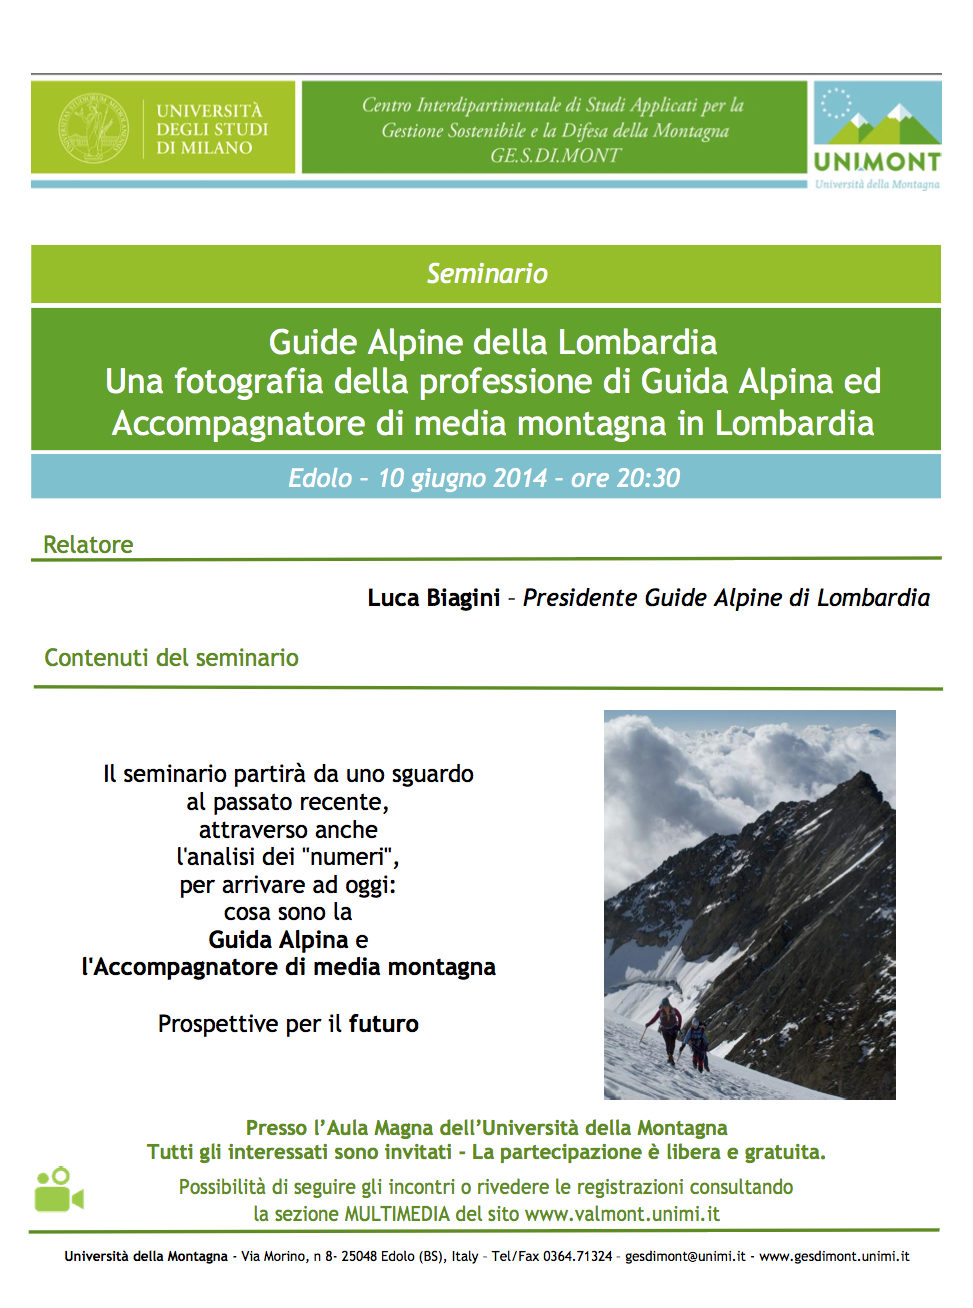 Seminario_guidaalpina